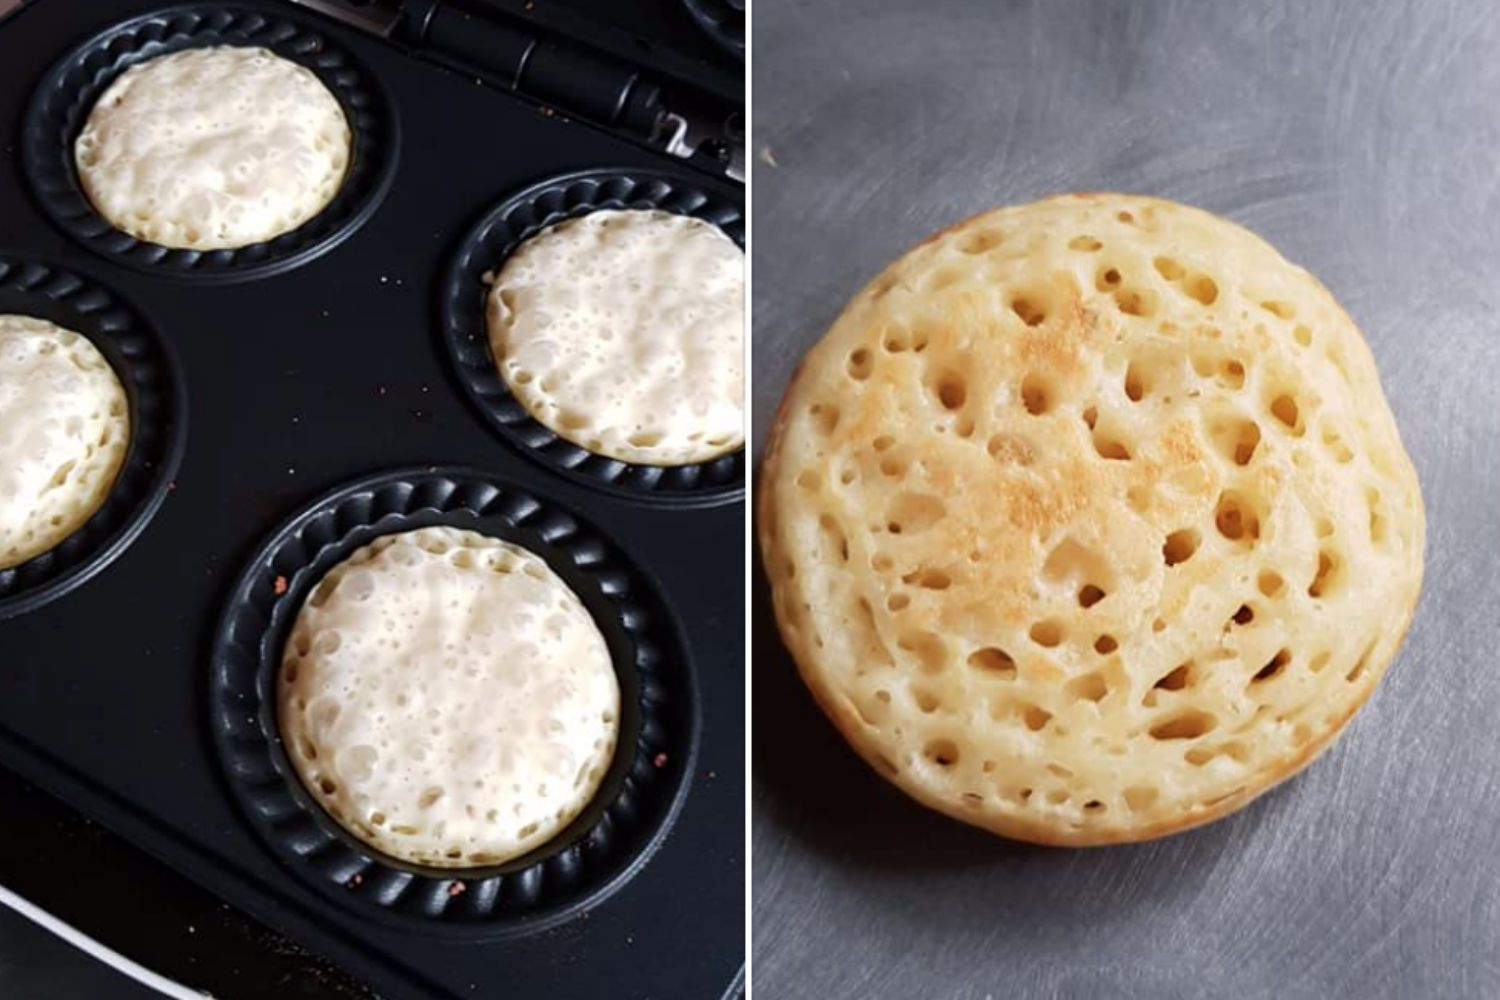 Kmart Pie Maker Fans Are Now Making Crumpets In The 29 Gadget And They Look Better Than Ones From The Shop Mini Pie Maker Mini Pie Recipes Pies Maker